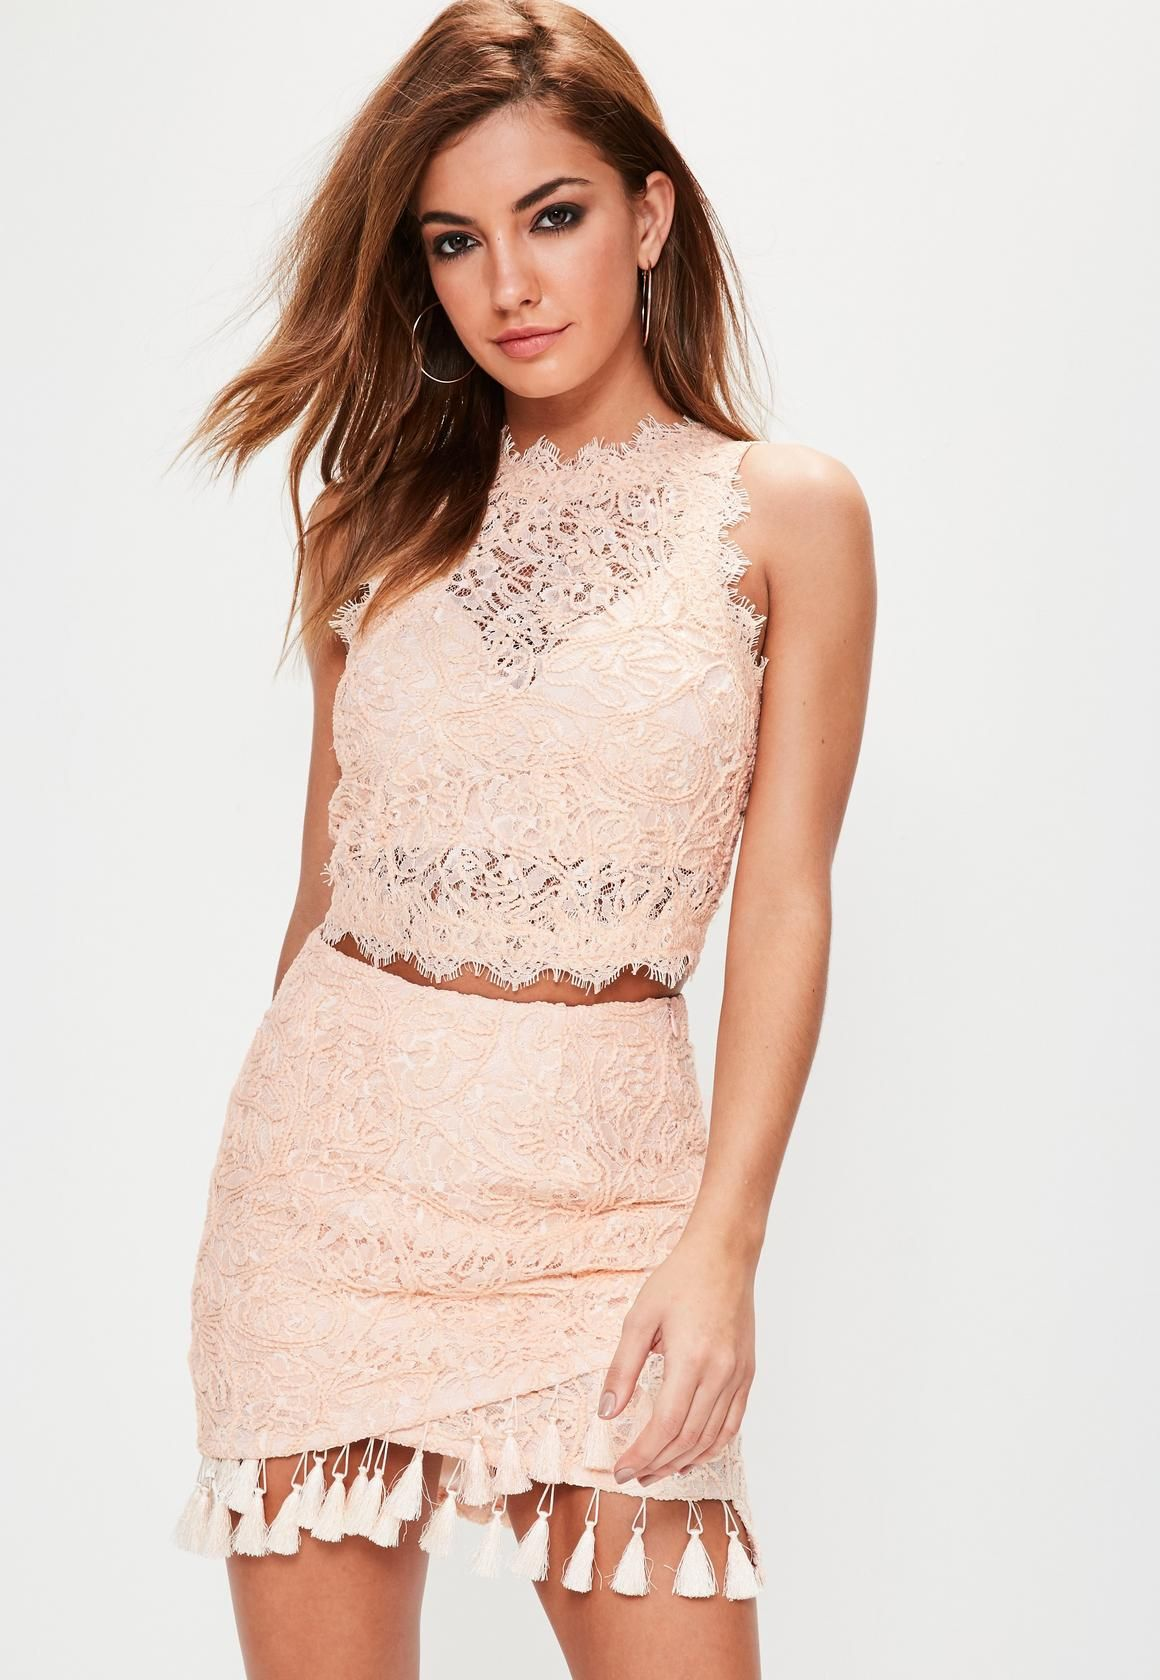 69c1159d8b2b8 Missguided - Nude Cornelli Lace Sleeveless Crop Top